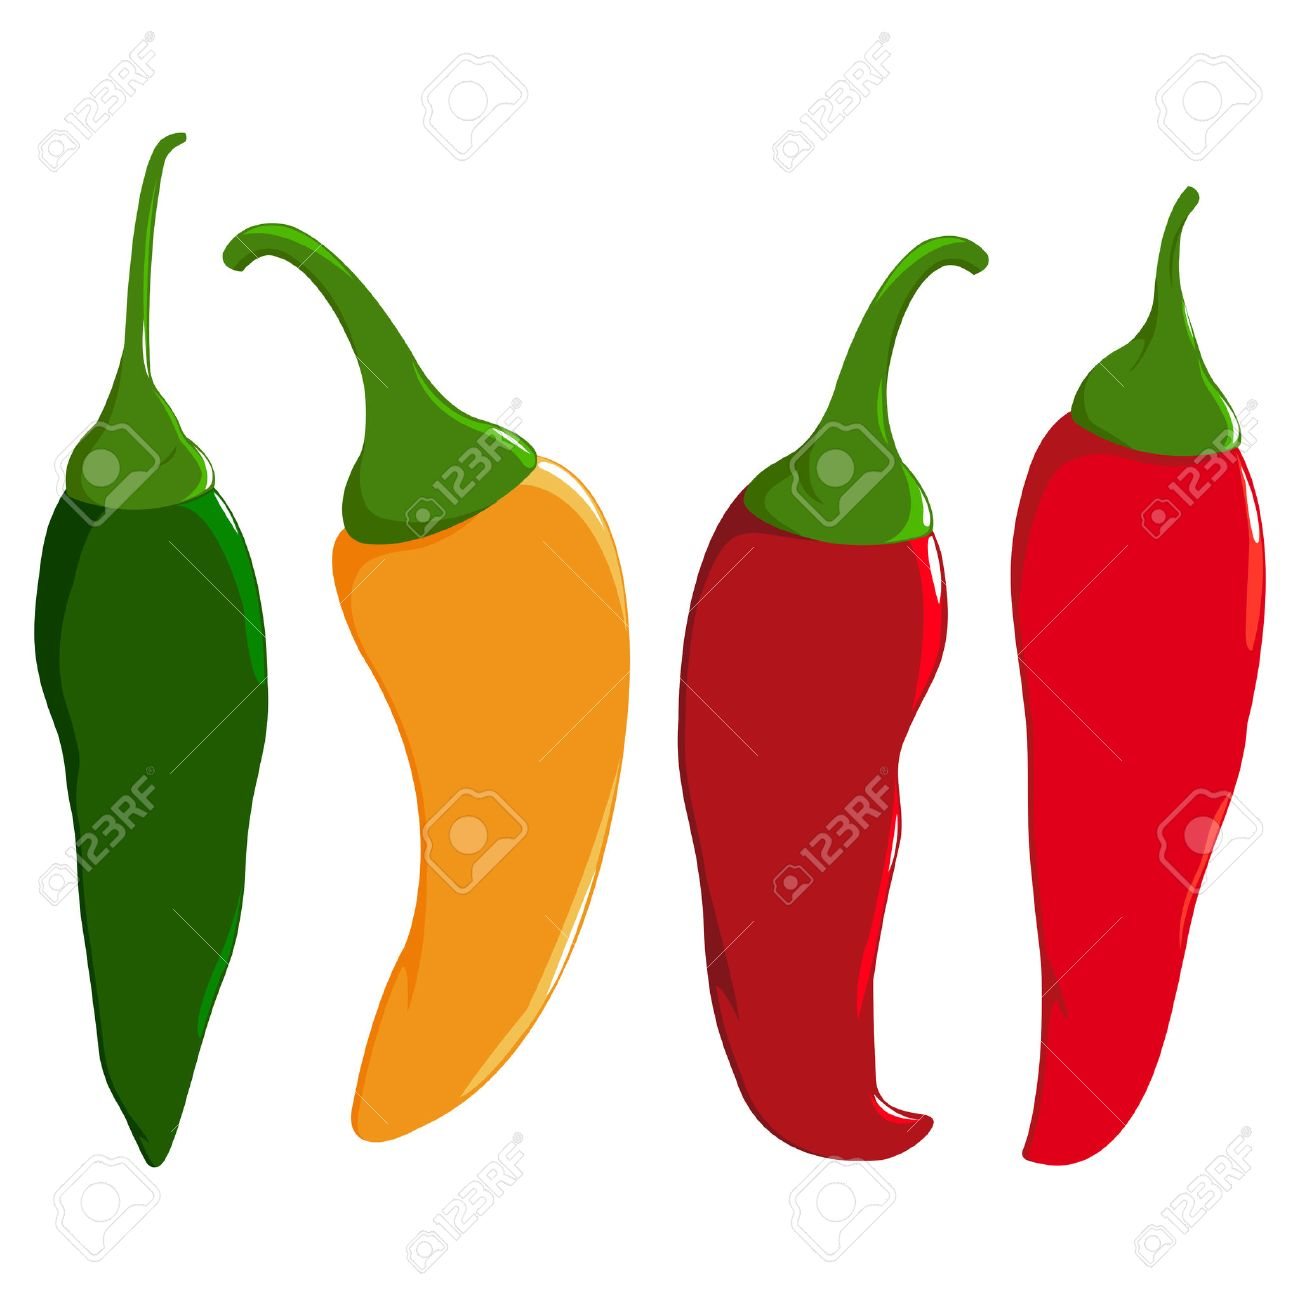 A set of hot chili peppers in four colors: red, green and yellow chili peppers. - 43692665